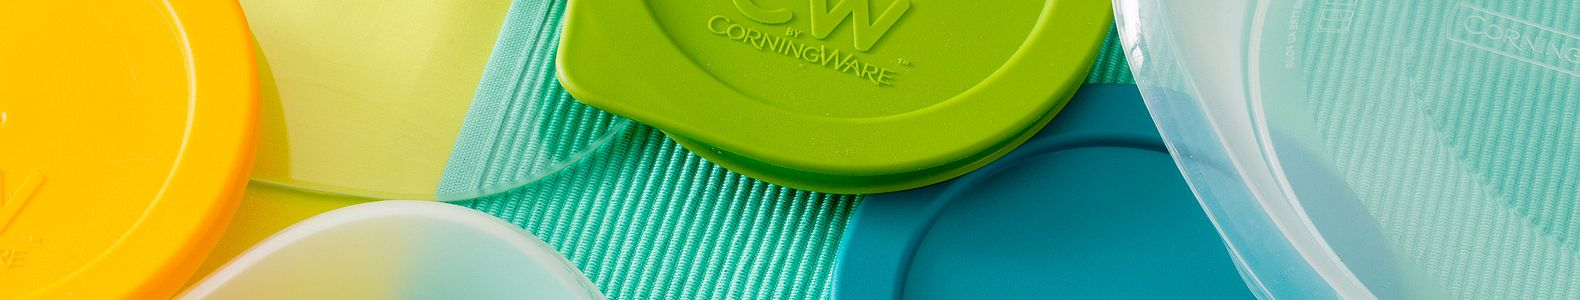 CW_replacement_lids_cagwin_6021844_6017964_1114551_2